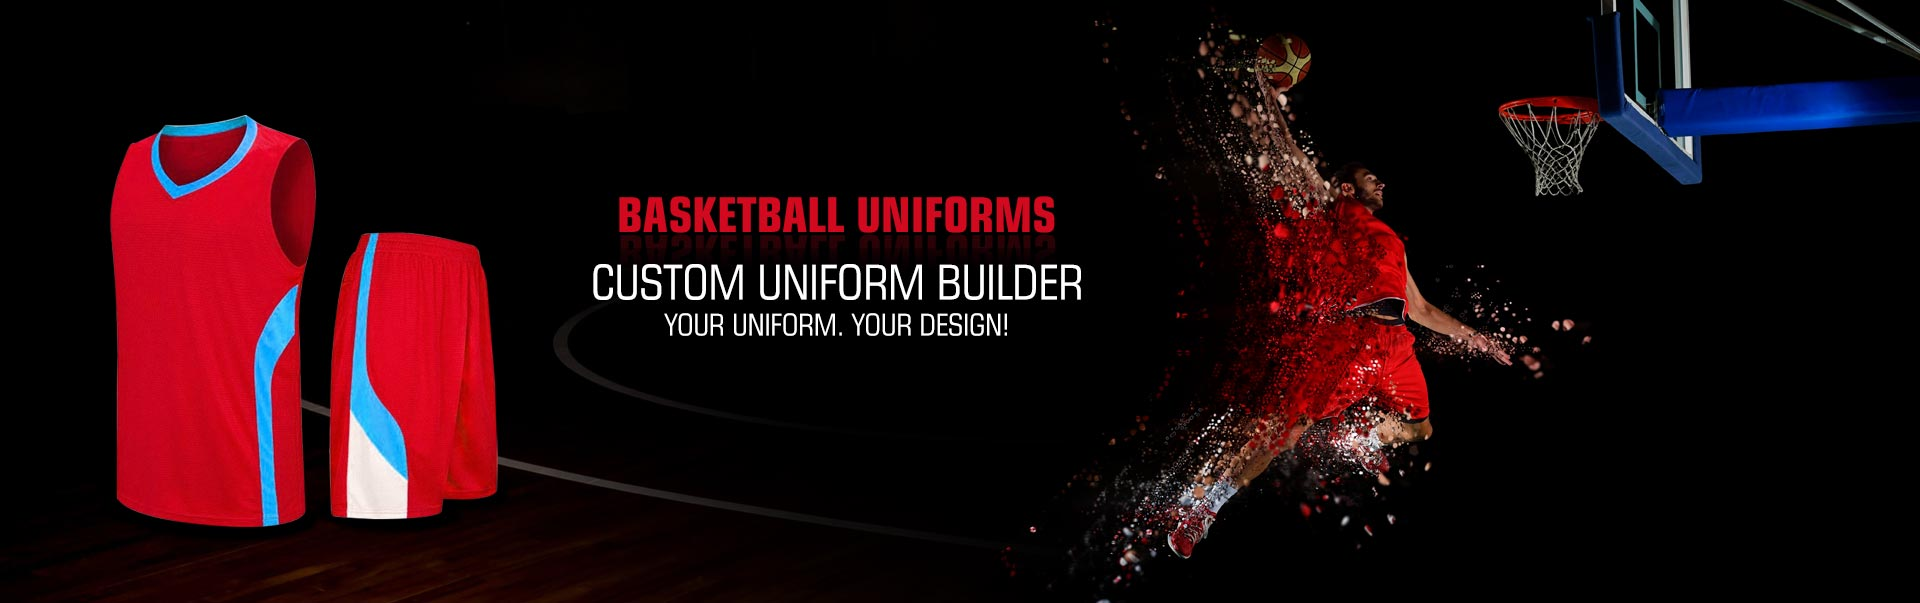 Basketball Uniforms Wholesaler, Suppliers in Leeds